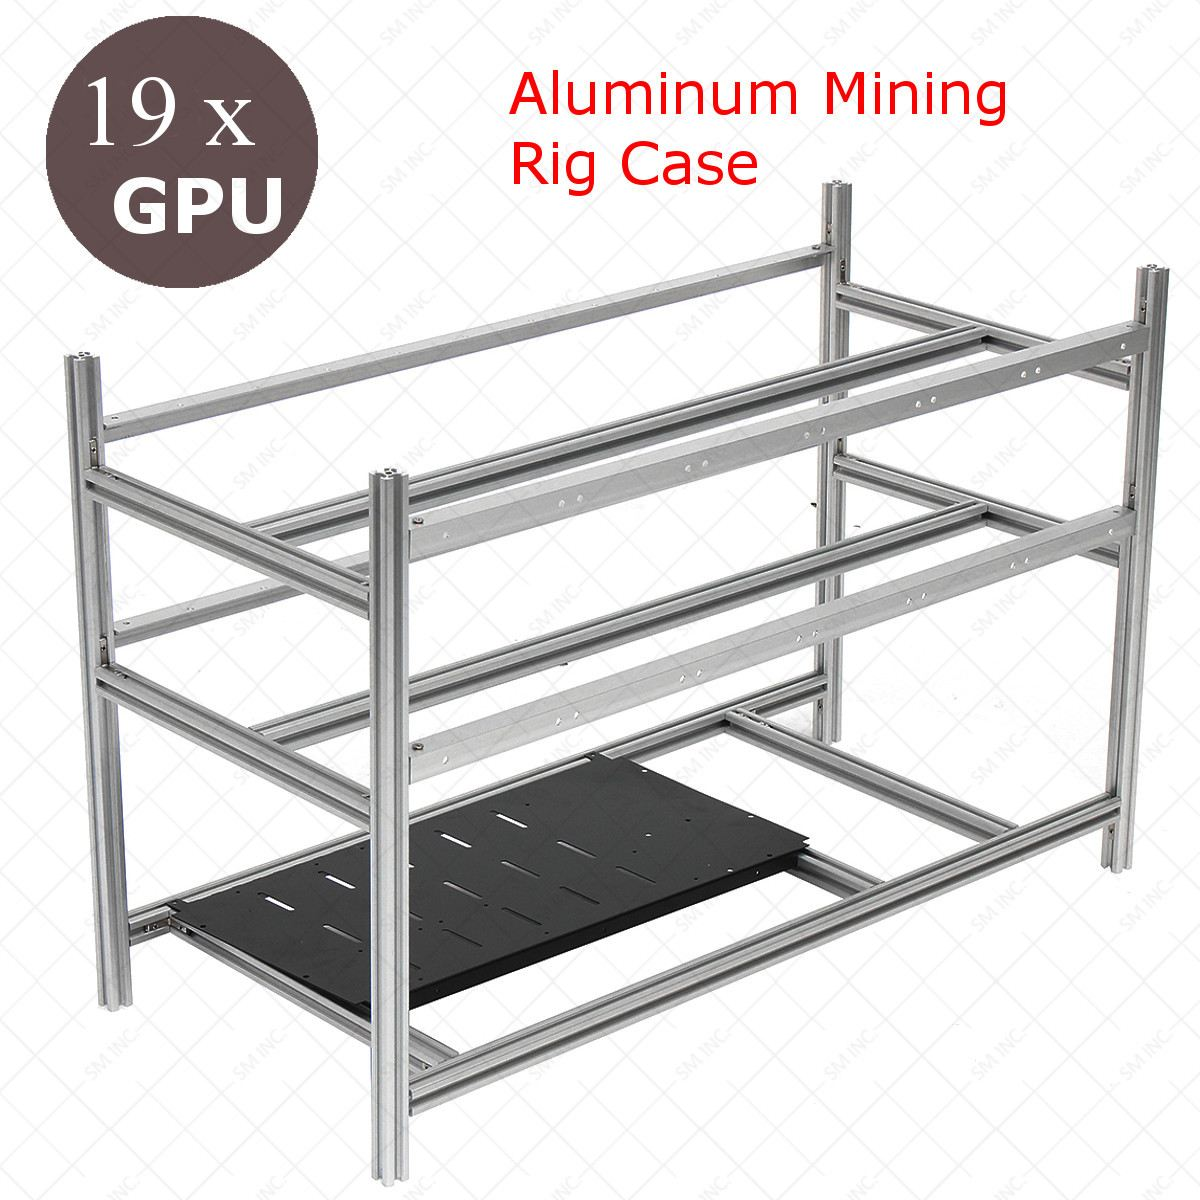 Stackable Open Air Mining Rig Frame Miner Case For 19 GPU ETC BTH 3 Power Supply New Computer Mining Case Frame Server Chassis mva business men briefcase handbags leather laptop bag men messenger bags genuine leather men bag male shoulder bags casual tote